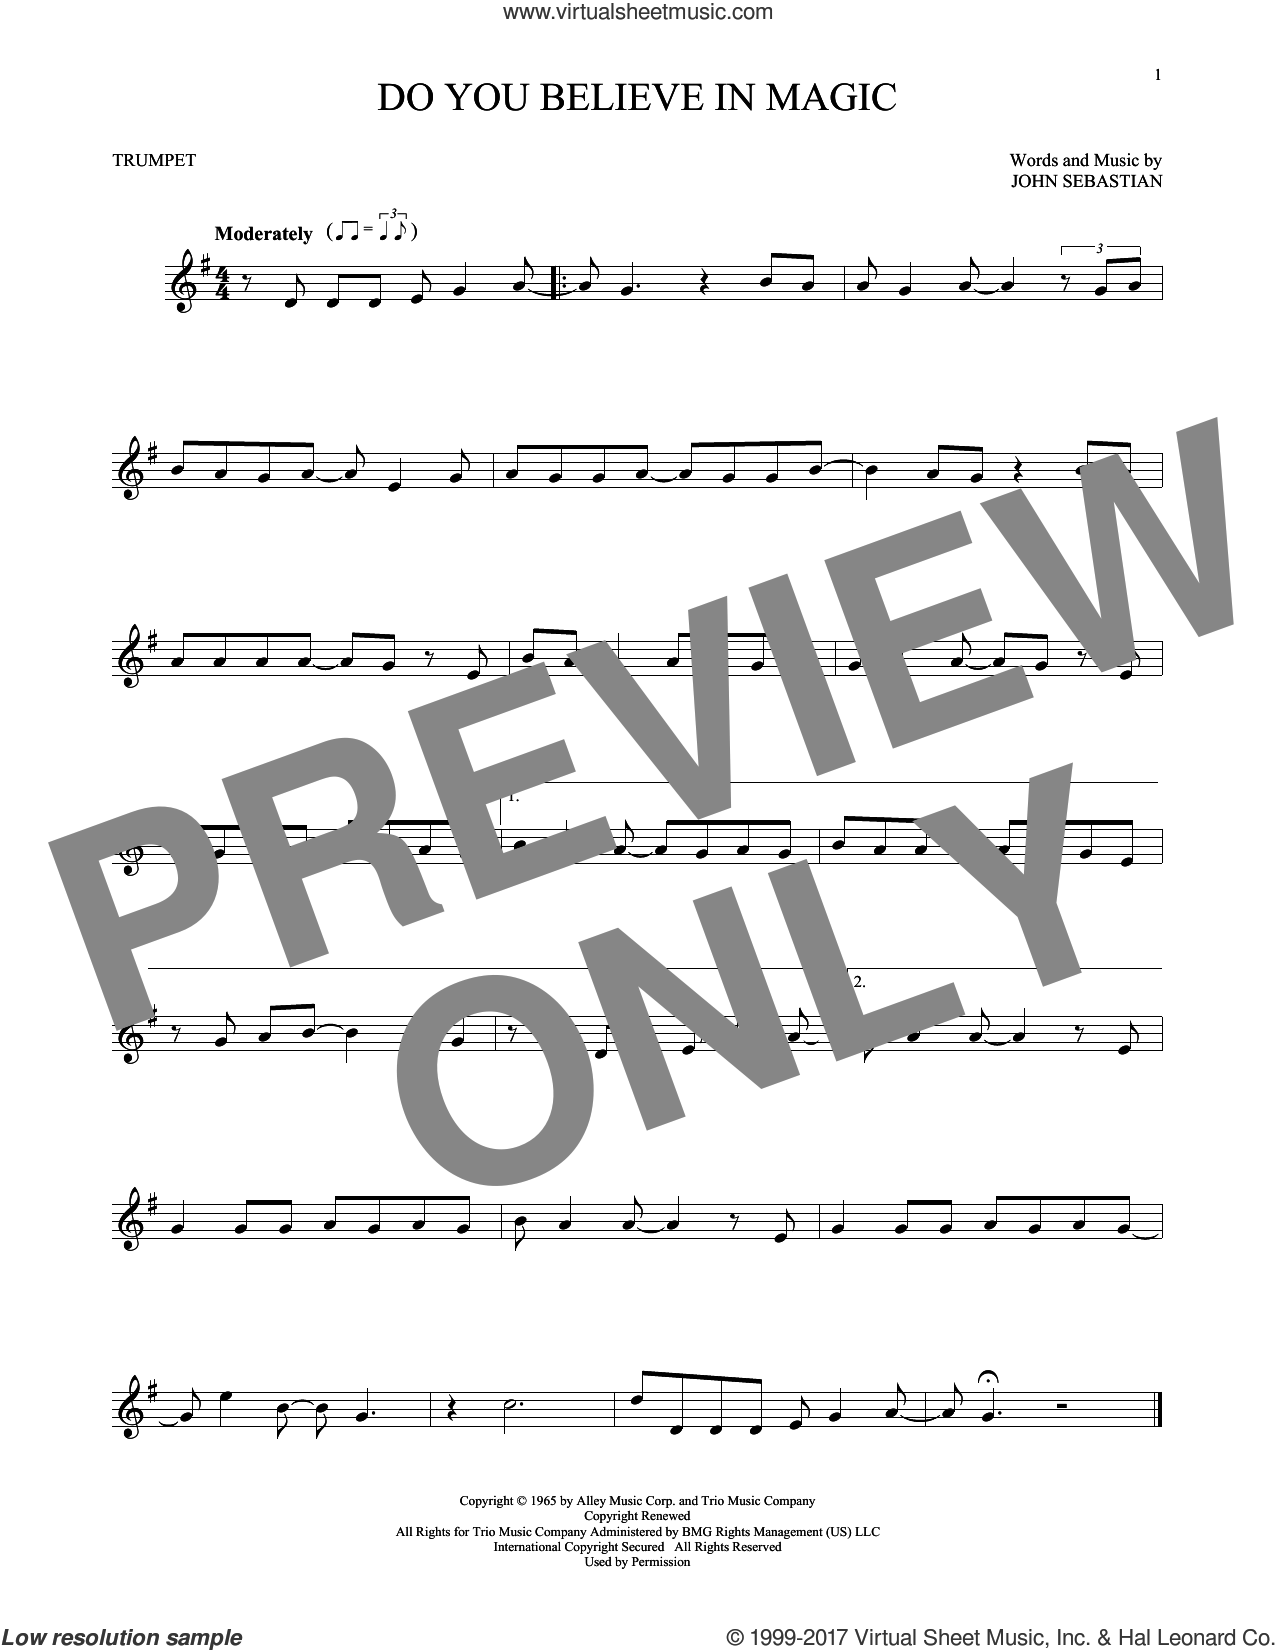 Do You Believe In Magic sheet music for trumpet solo by Lovin' Spoonful and John Sebastian, intermediate skill level